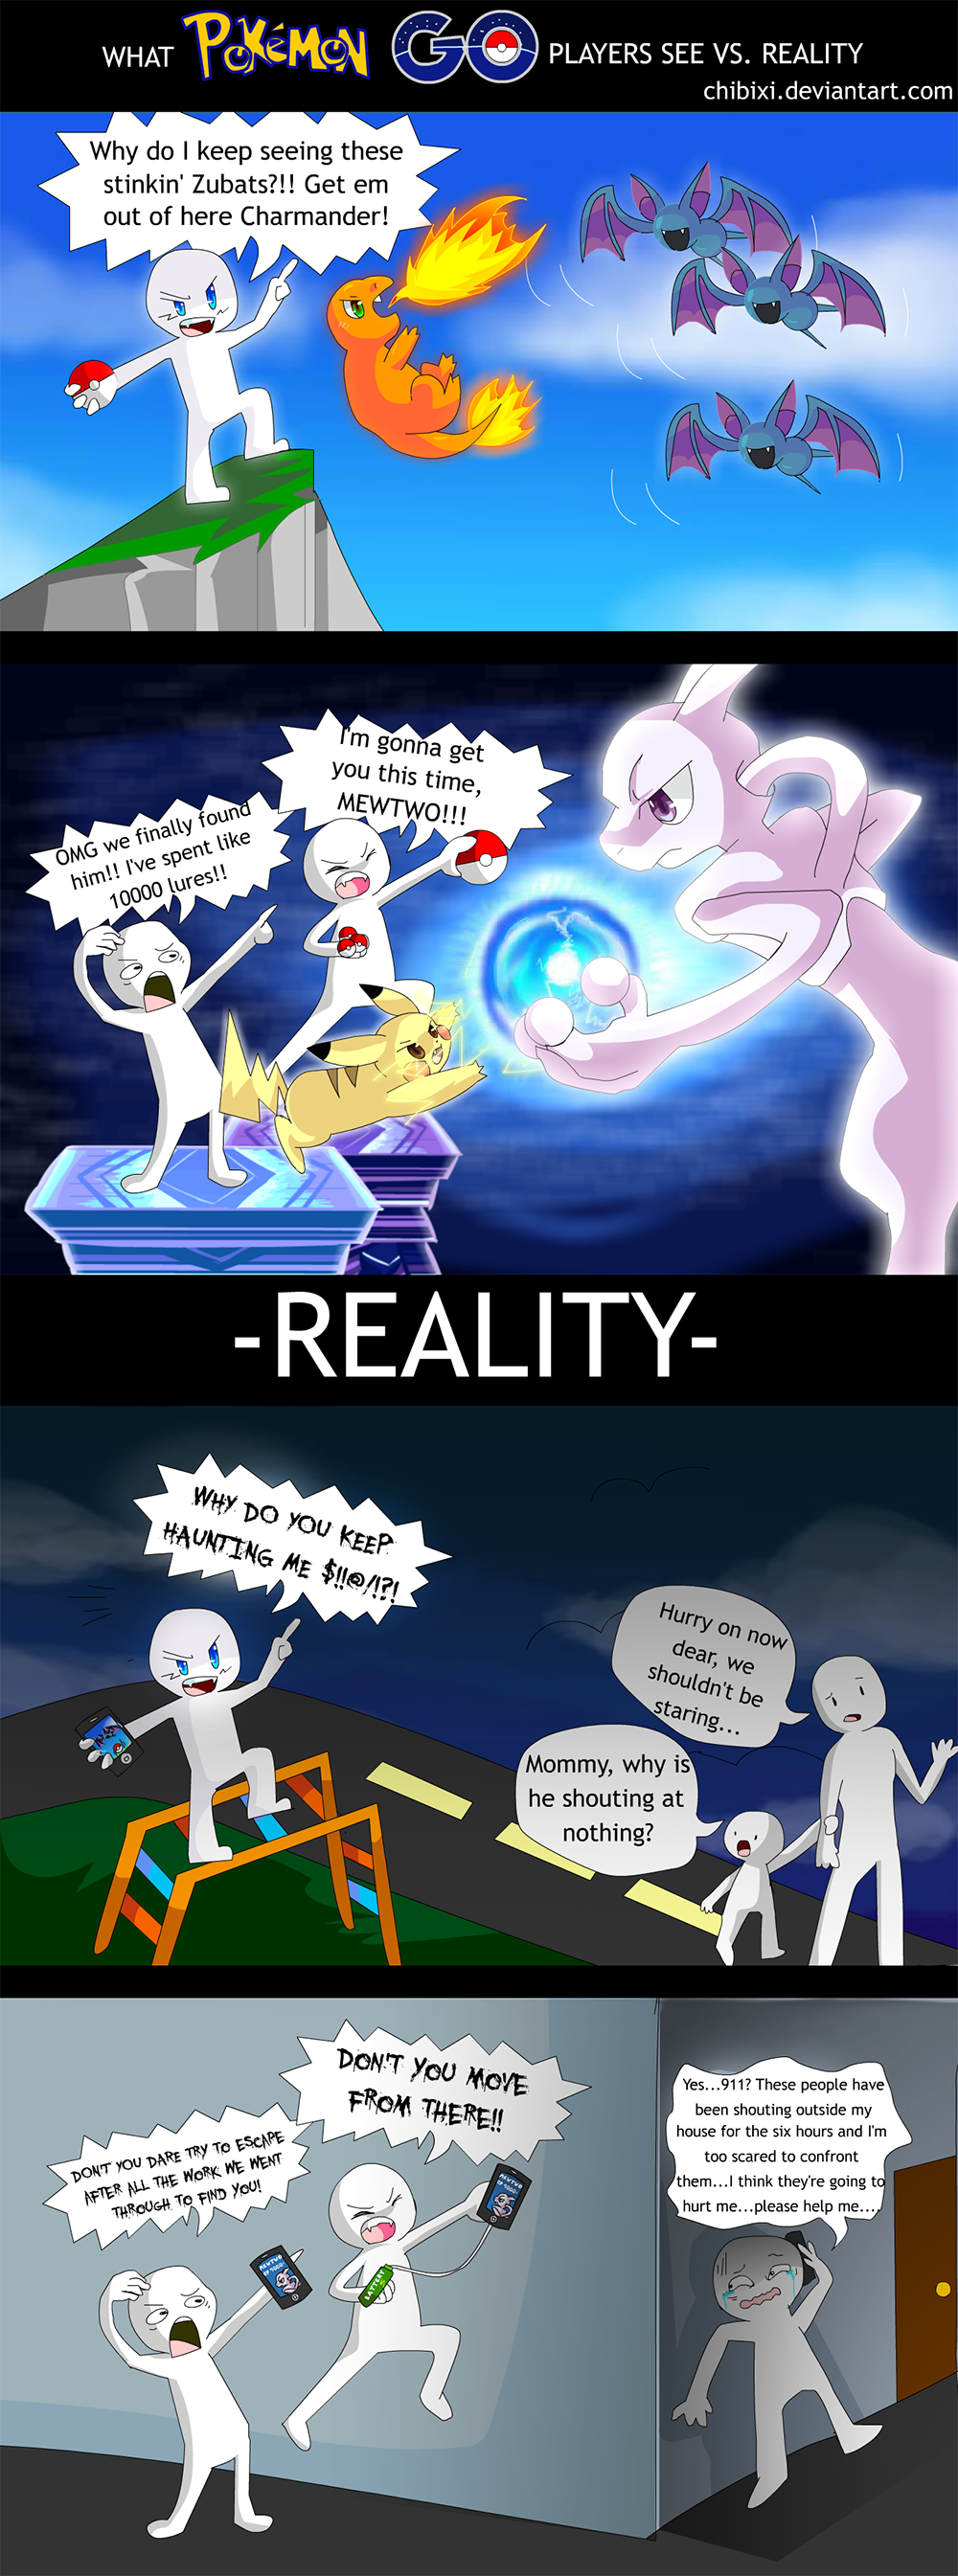 what pokemon go players see vs reality comic by chibixi. Black Bedroom Furniture Sets. Home Design Ideas